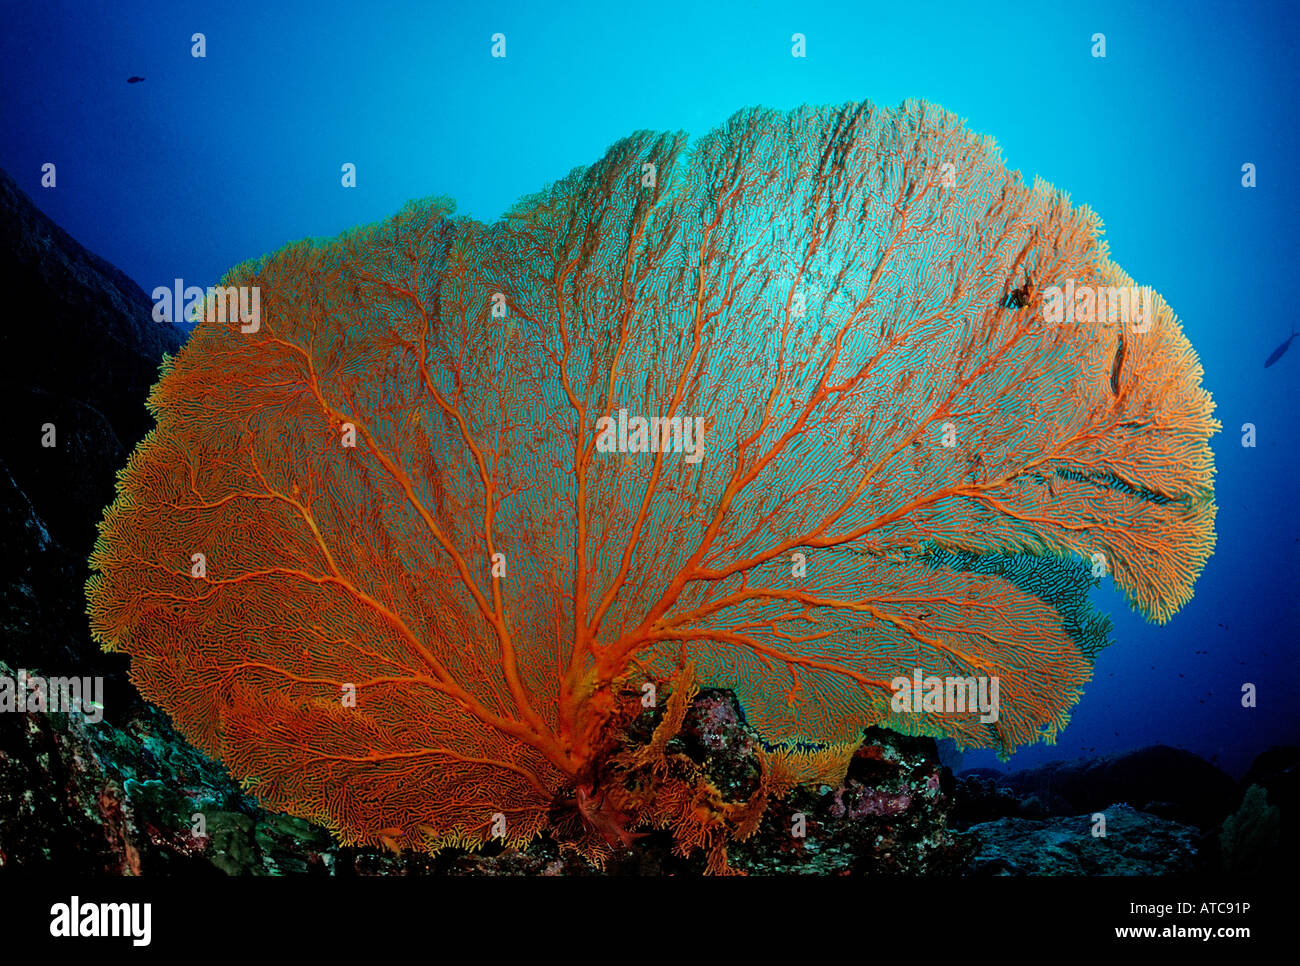 Gorgonien Fan Similan Islands Thailand Stock Photo